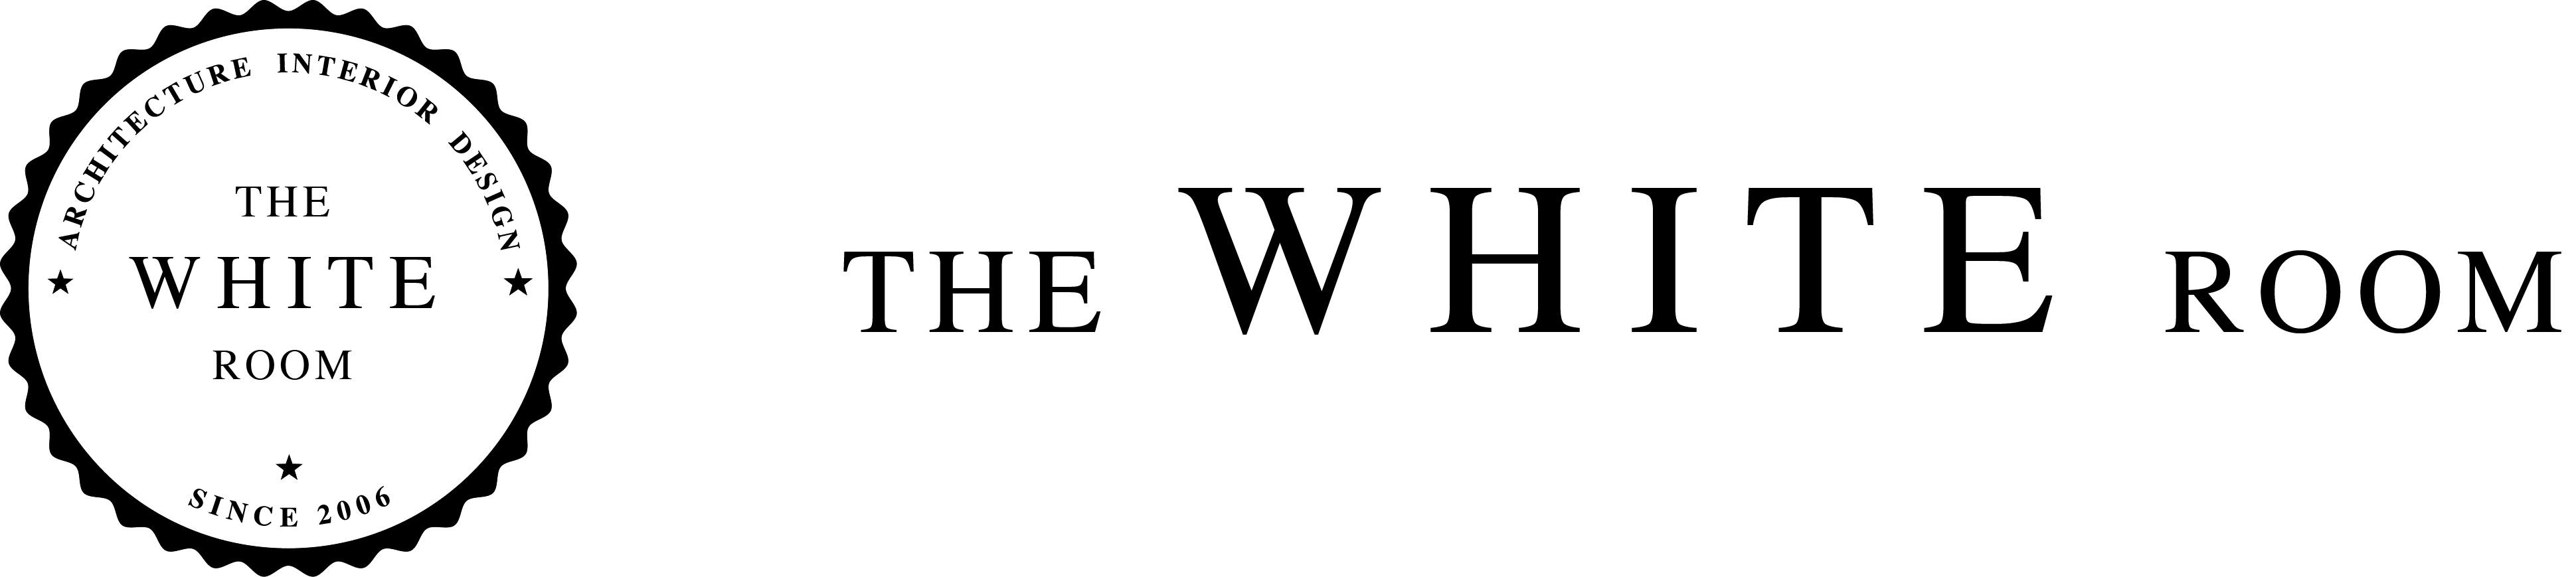 Final-Logo-TWR-Rectangle-Black-transparent.png